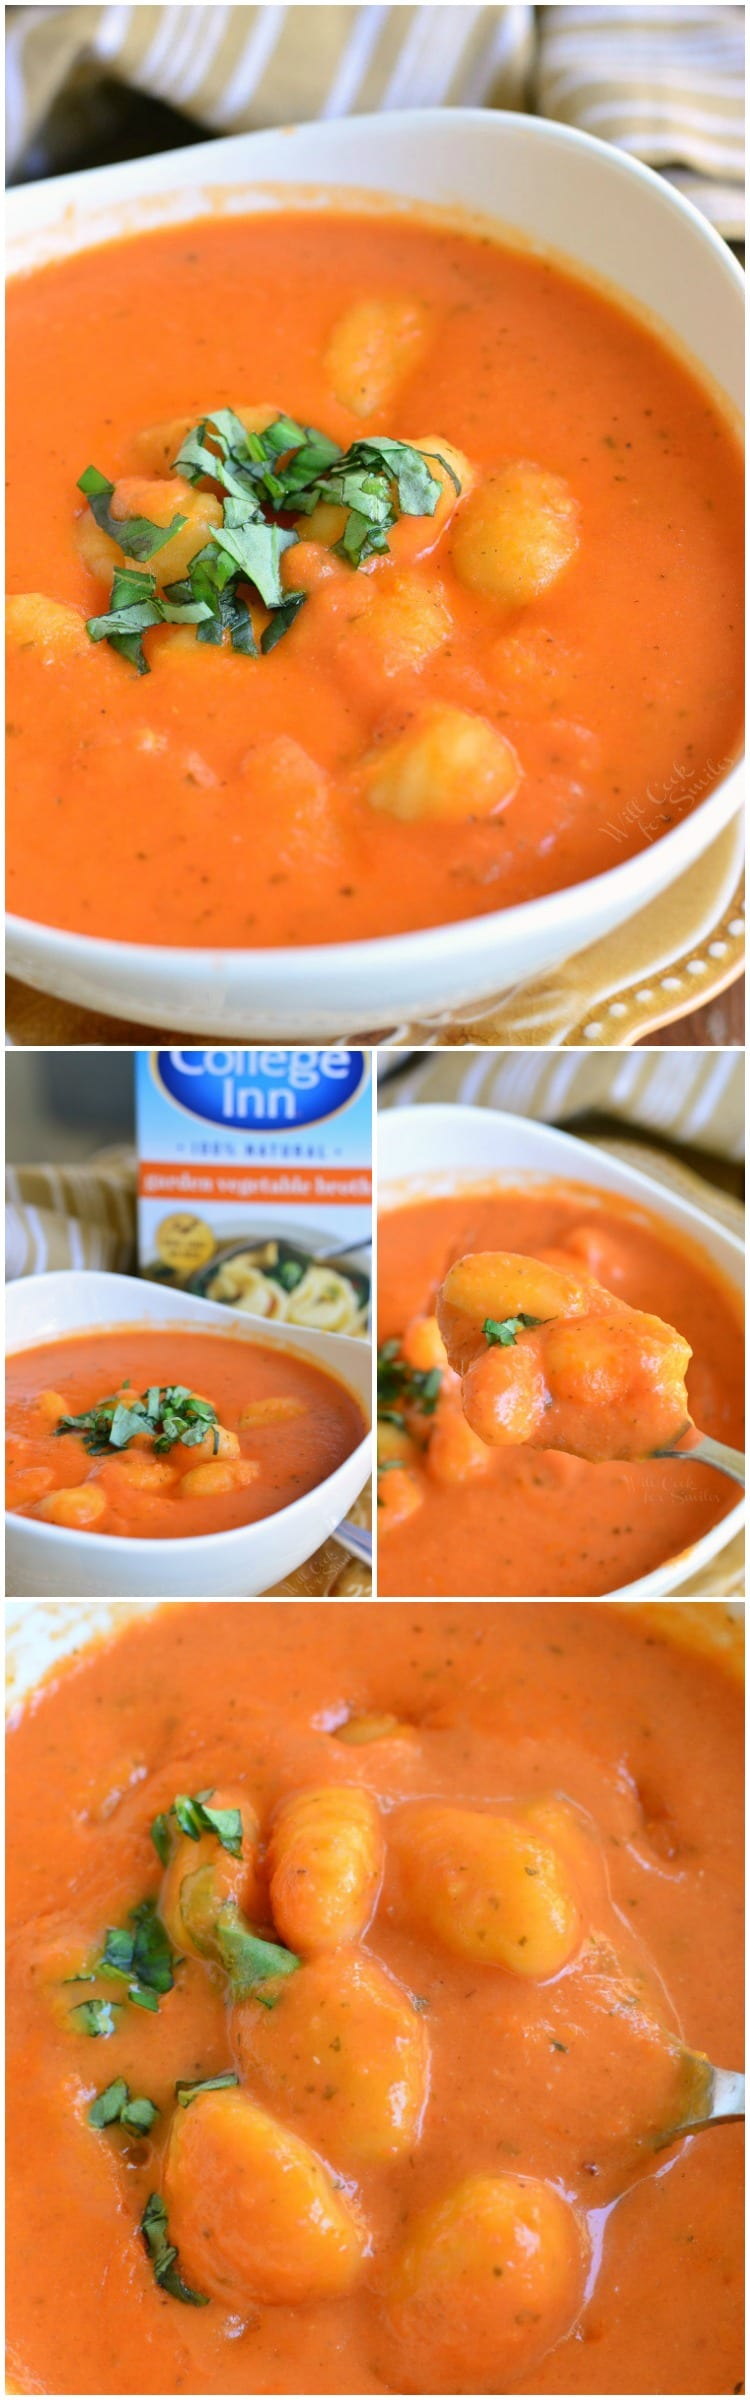 Homemade Tomato Soup with Gnocchi in a bowl collage